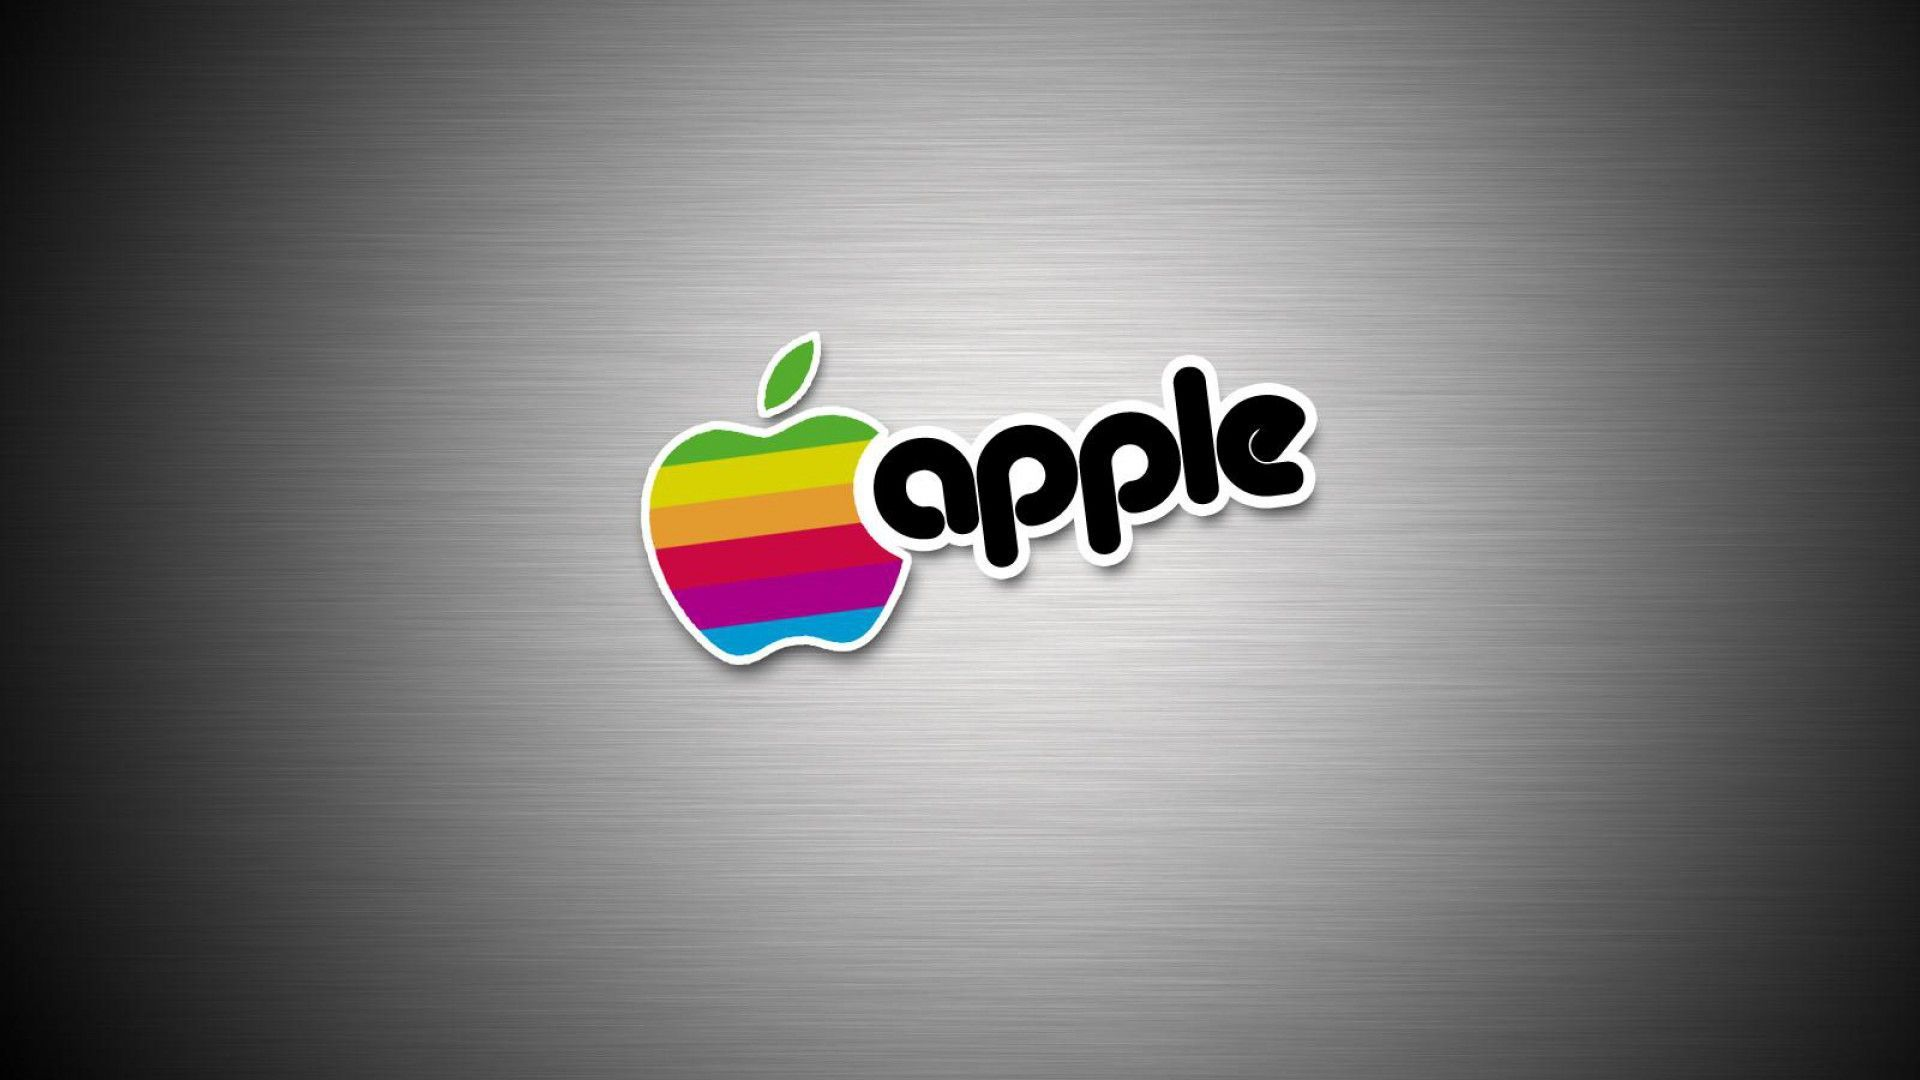 cool apple logos hd. apple logo wallpapers hd pixelstalk excellent 1920x1080 cool logos hd